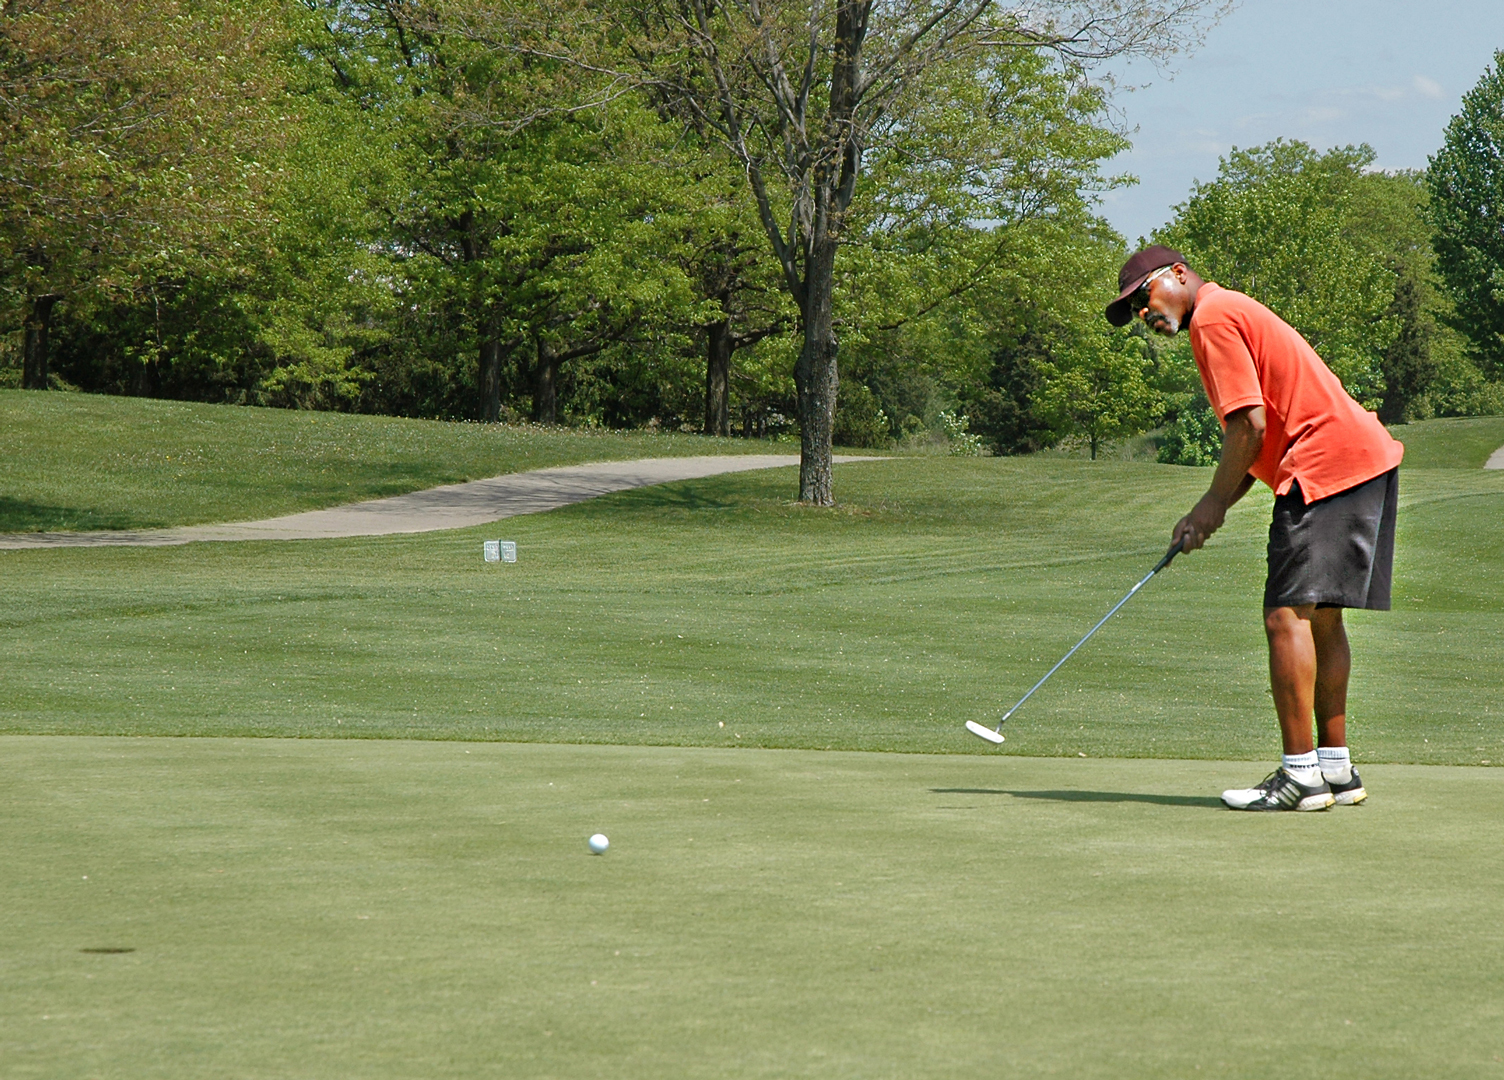 A golfer putting on the 6th green at Blacklick Woods Golf Courses' Gold Course